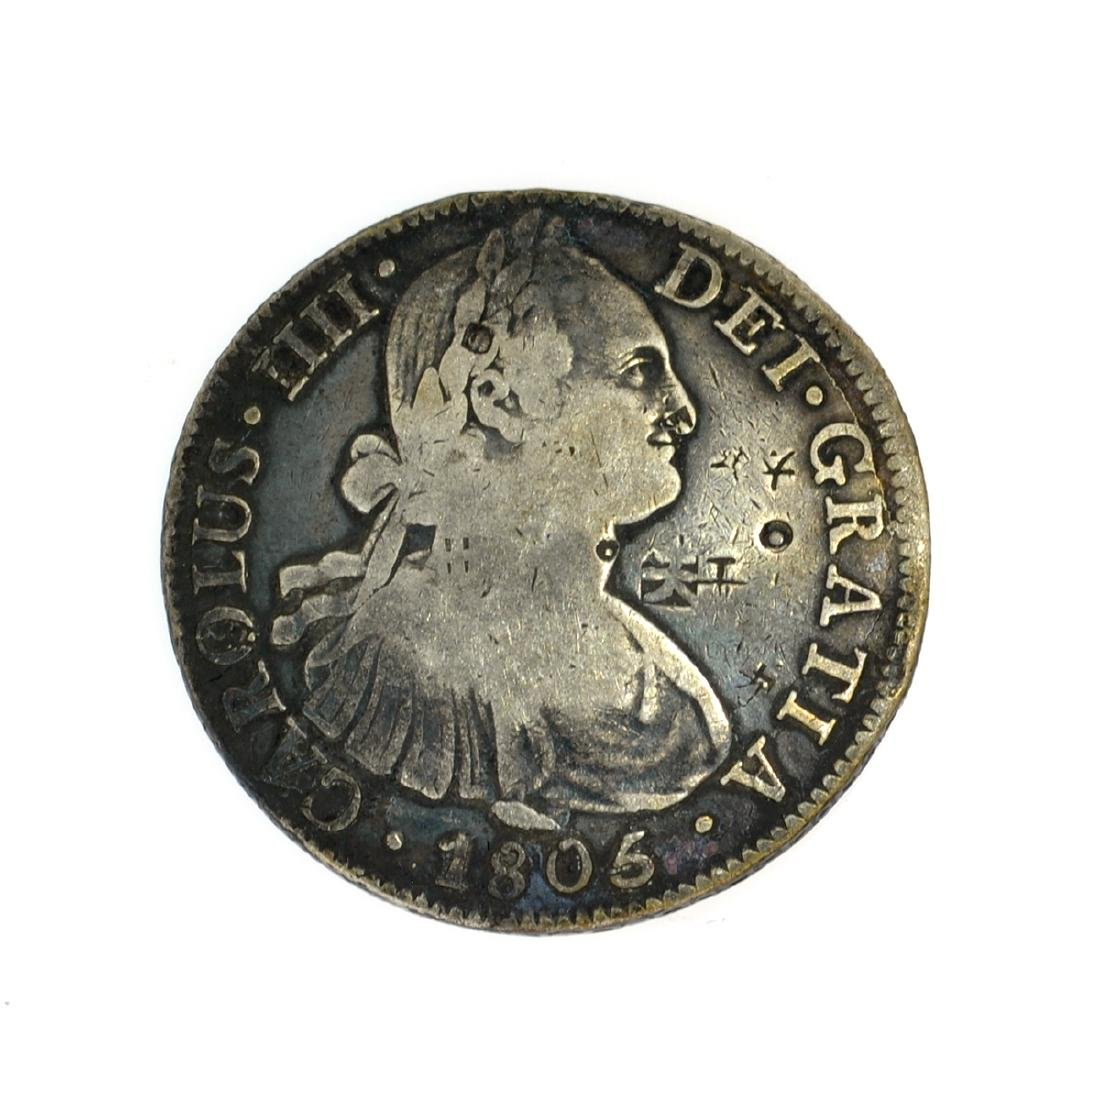 1805 Eigth Reales American First Silver Dollar Coin